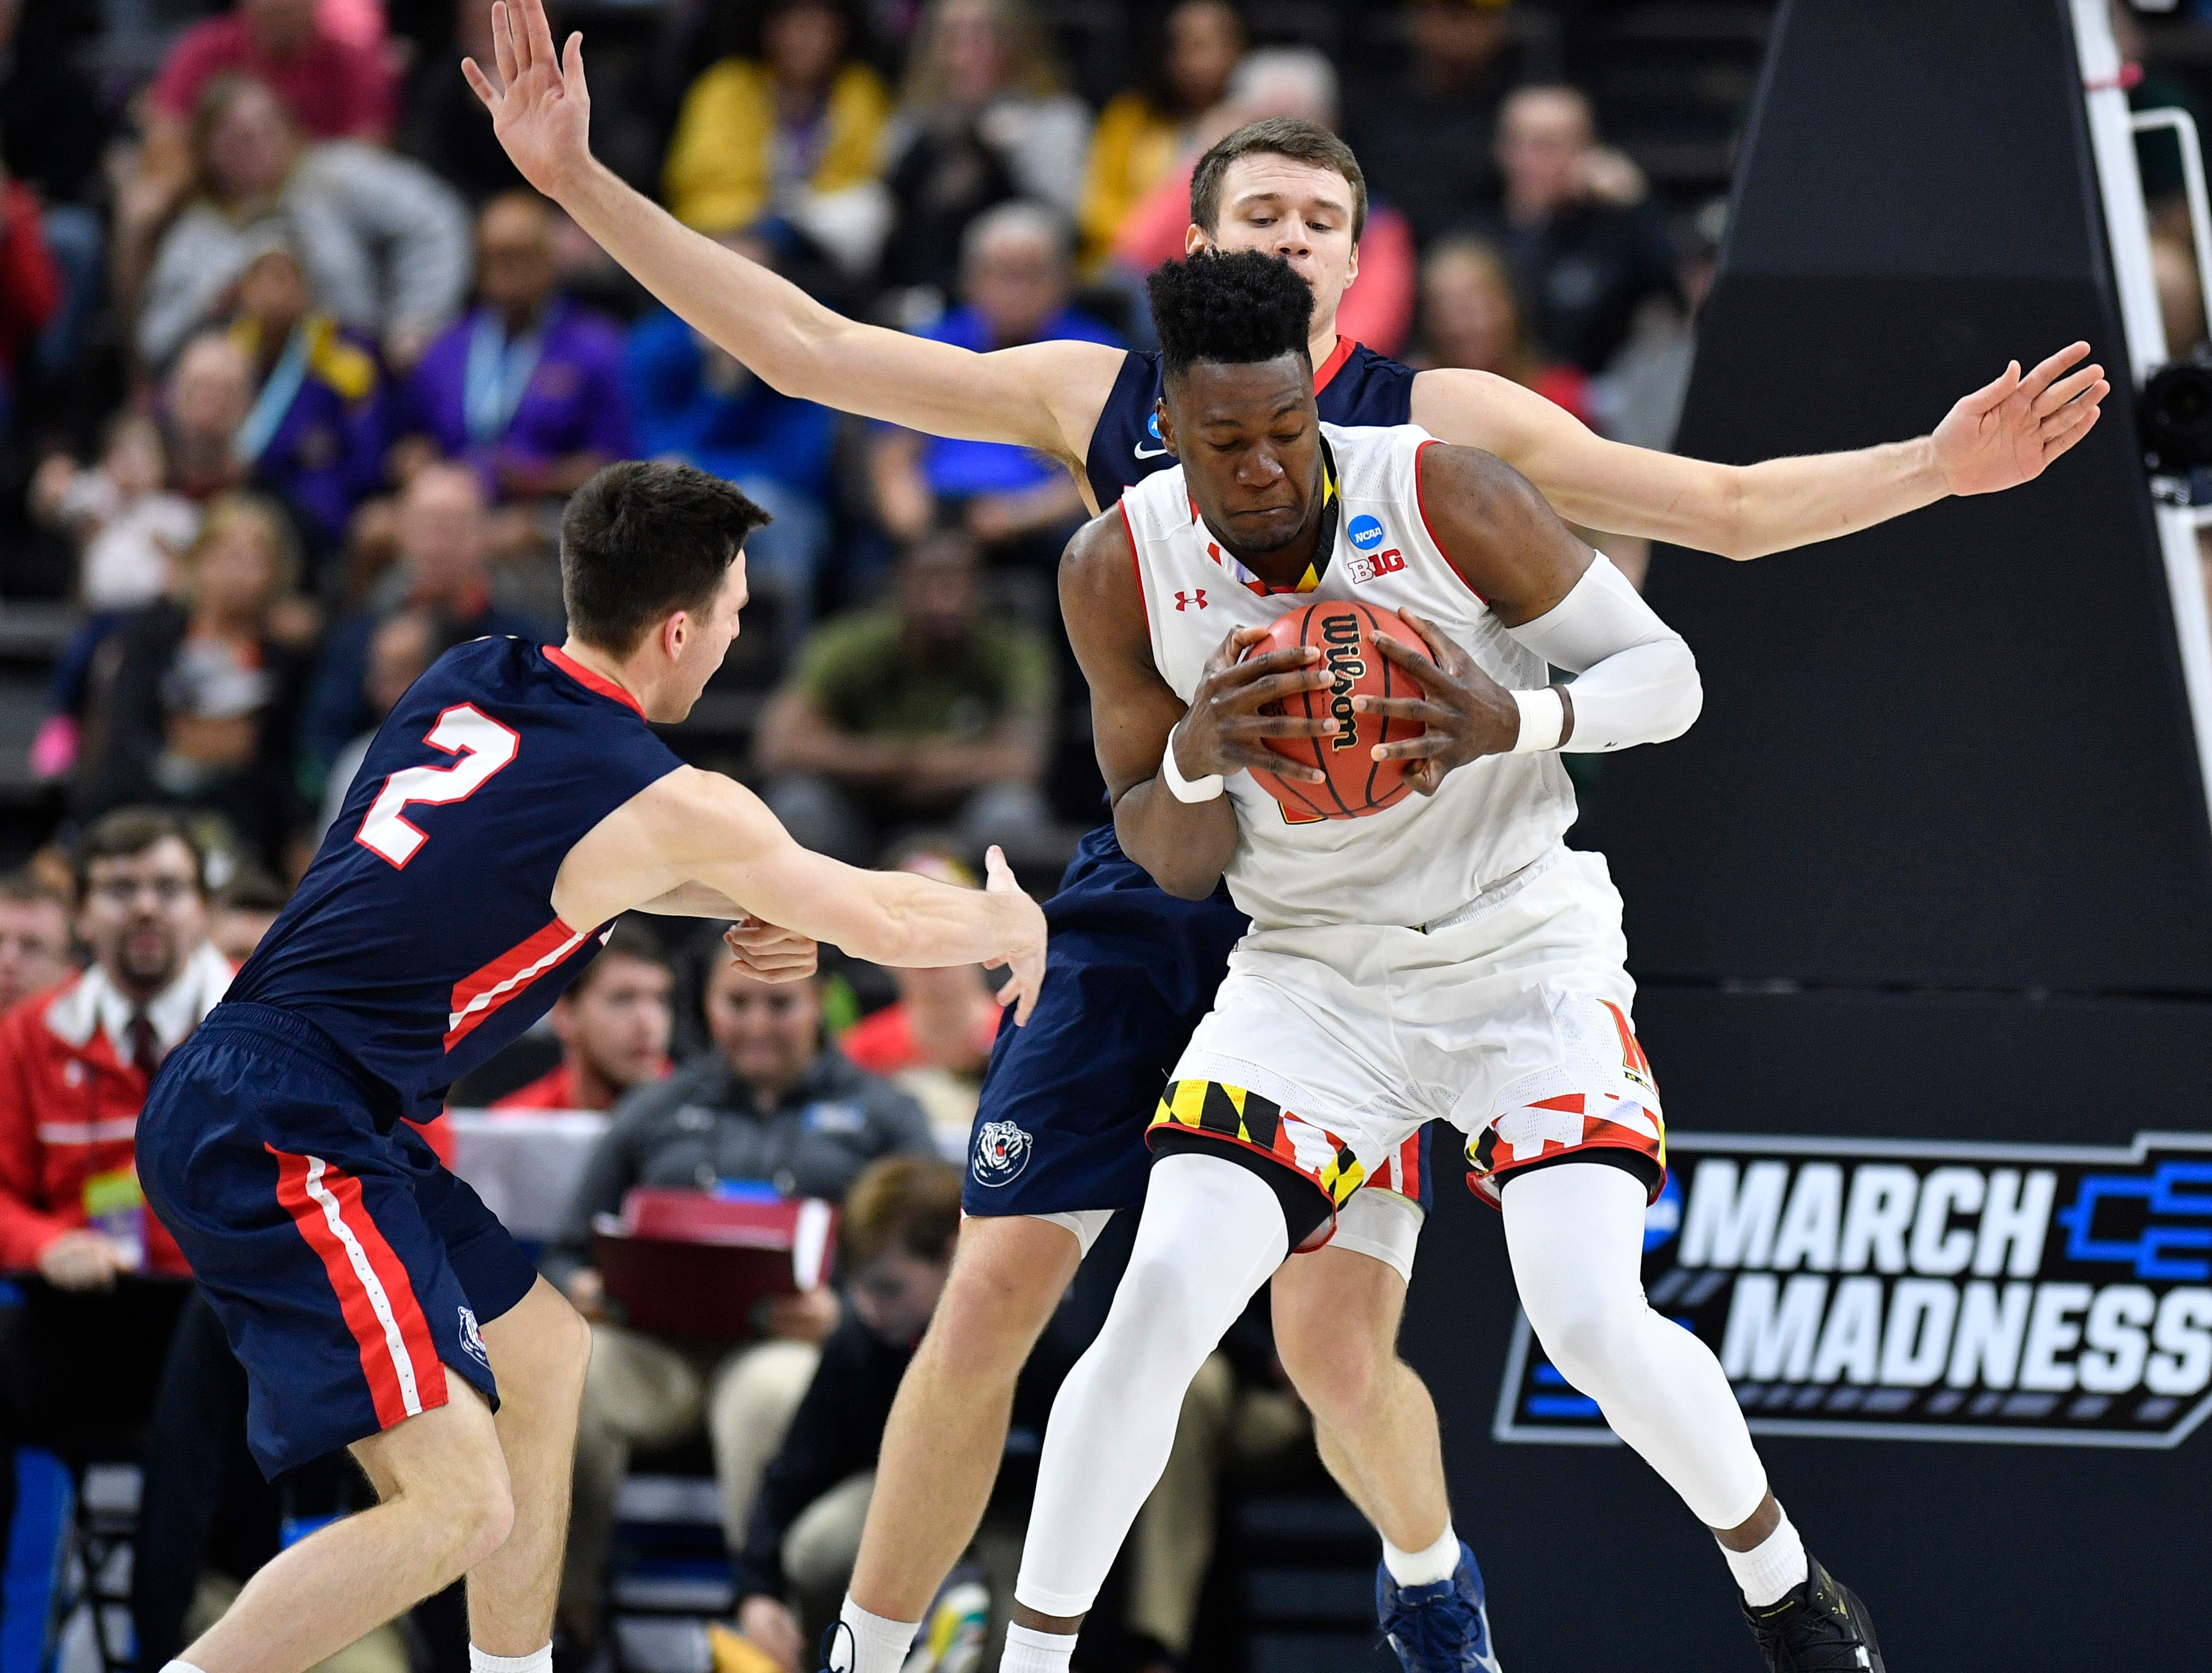 Belmont center Nick Muszynski (33) and guard Grayson Murphy (2) defend Maryland forward Bruno Fernando (23) during the second half of the first-round NCAA college basketball tournament game at VyStar Veterans Memorial Arena in Jacksonville, Fla., Thursday, March 21, 2019.